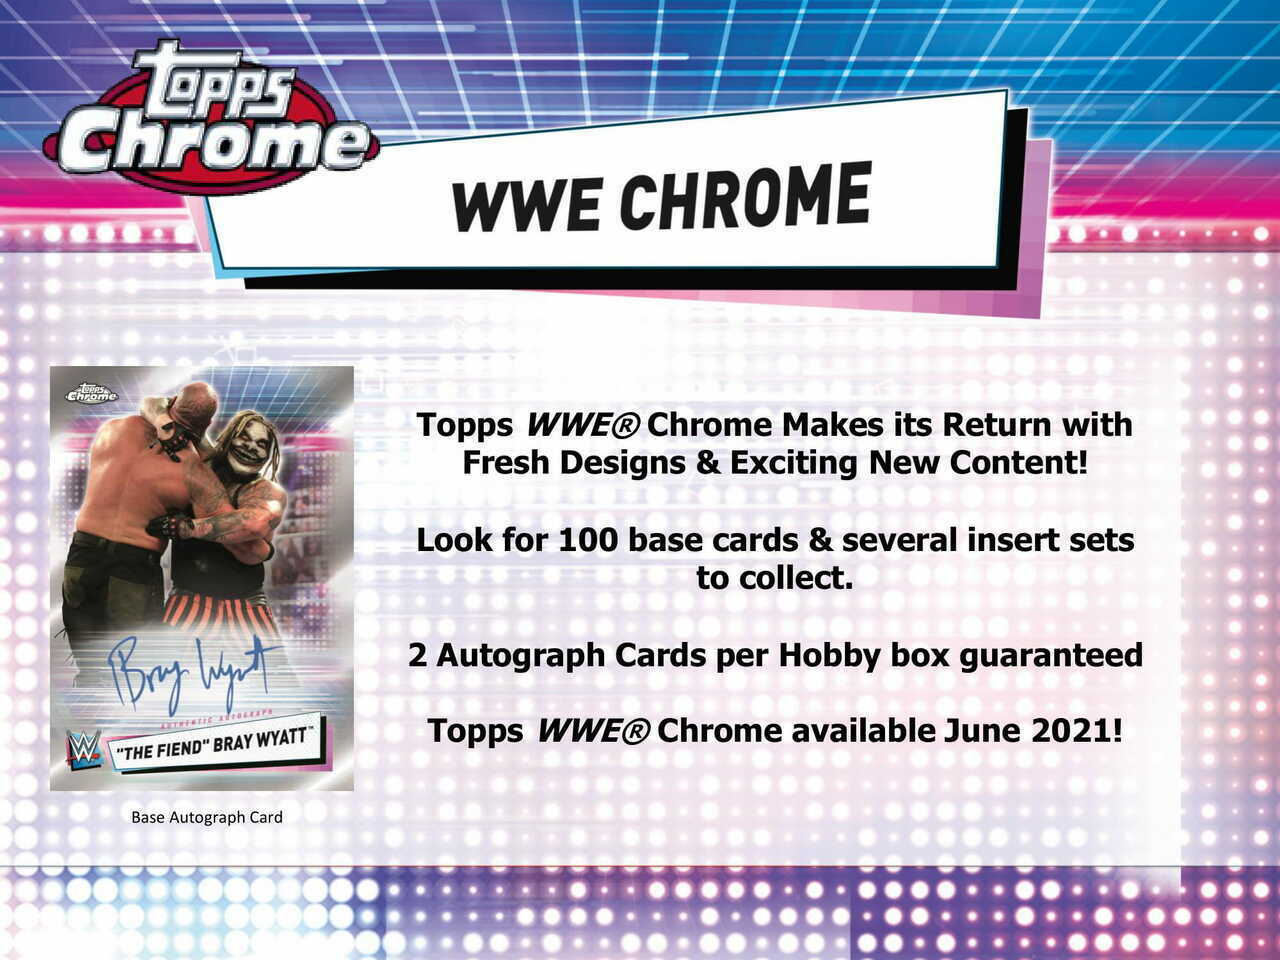 2021 Topps WWE Chrome Hobby Box PreOrder 06/16